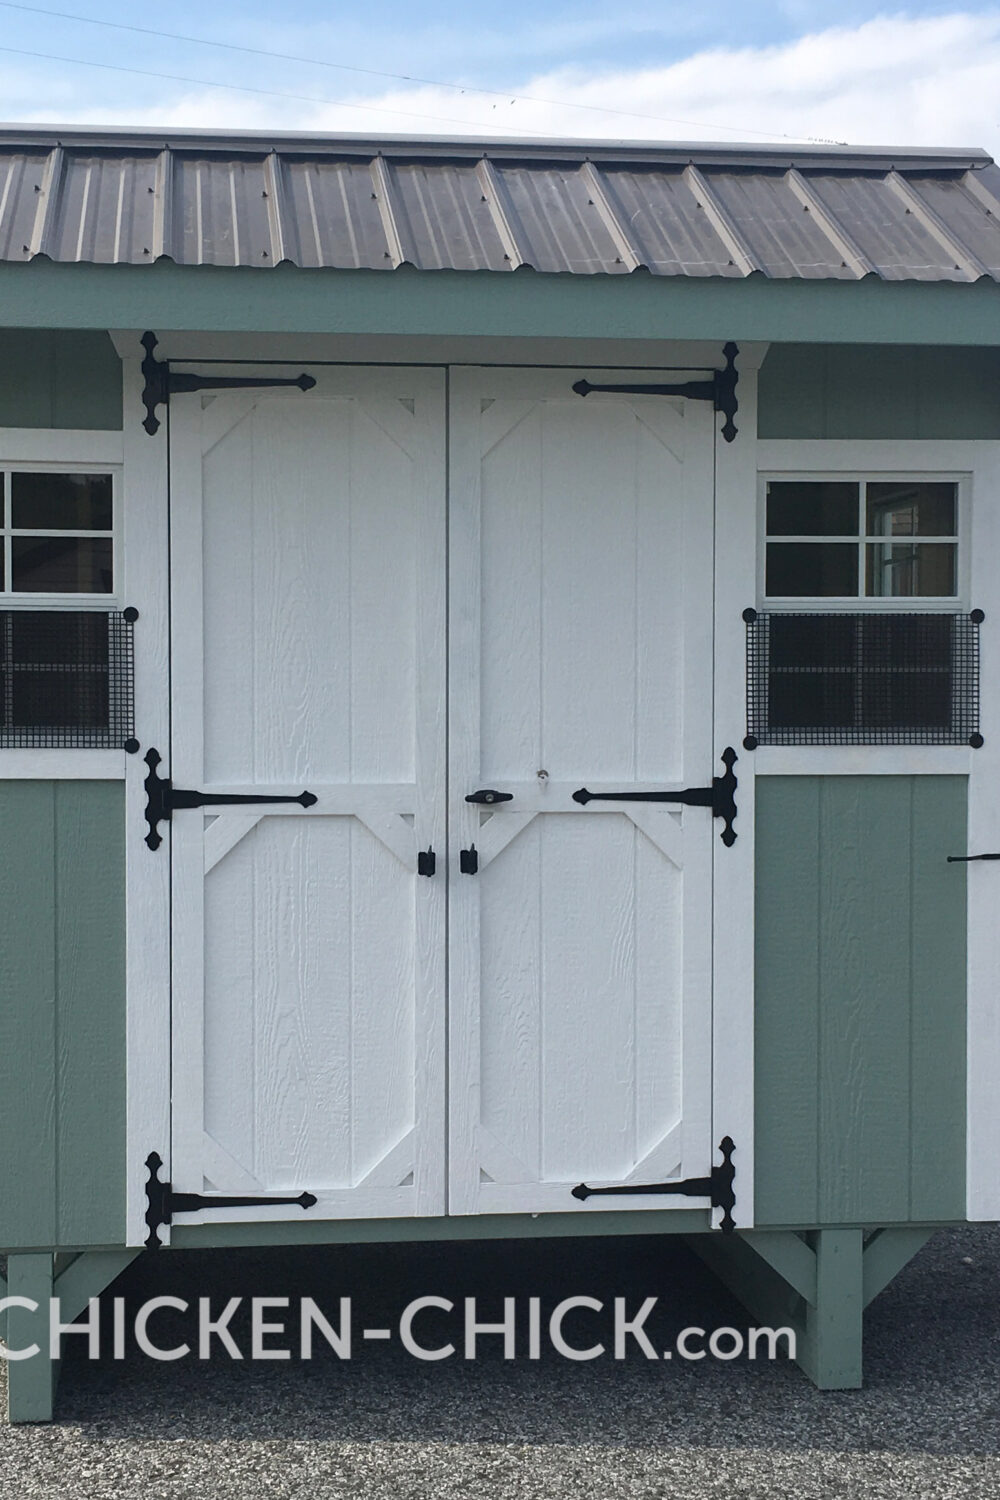 The Chicken Chick's Essential Coop® Locking, Double Doors for People Access and easy clean-out